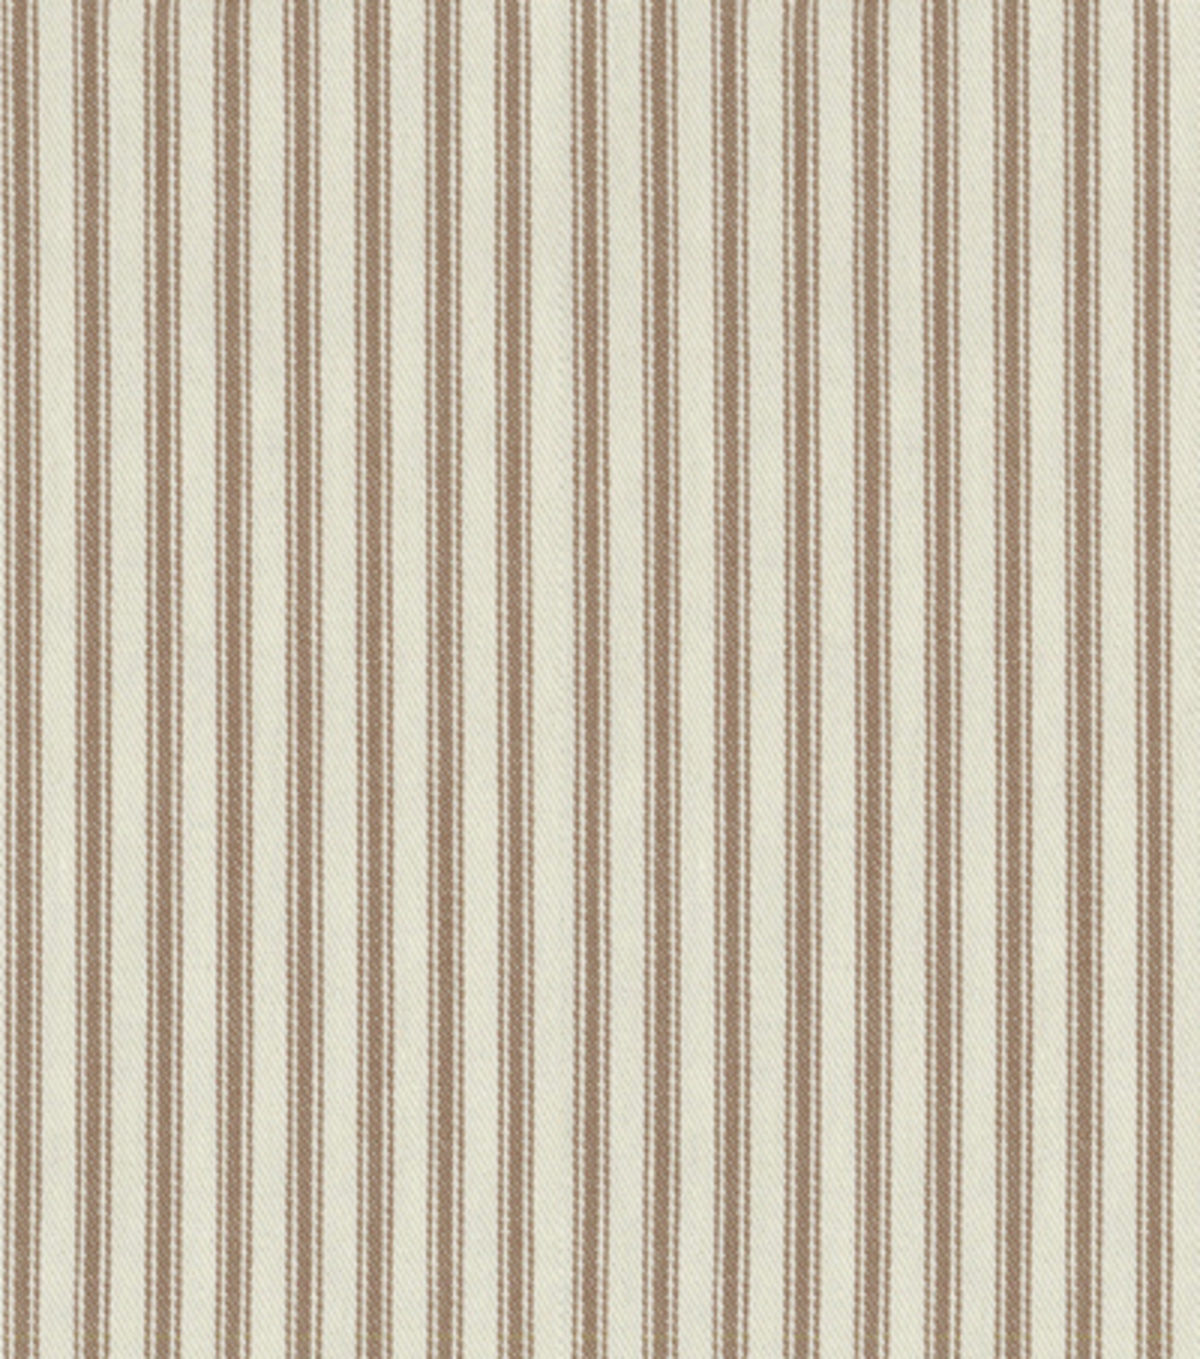 Waverly Upholstery Fabric-Classic Ticking/Chocolate